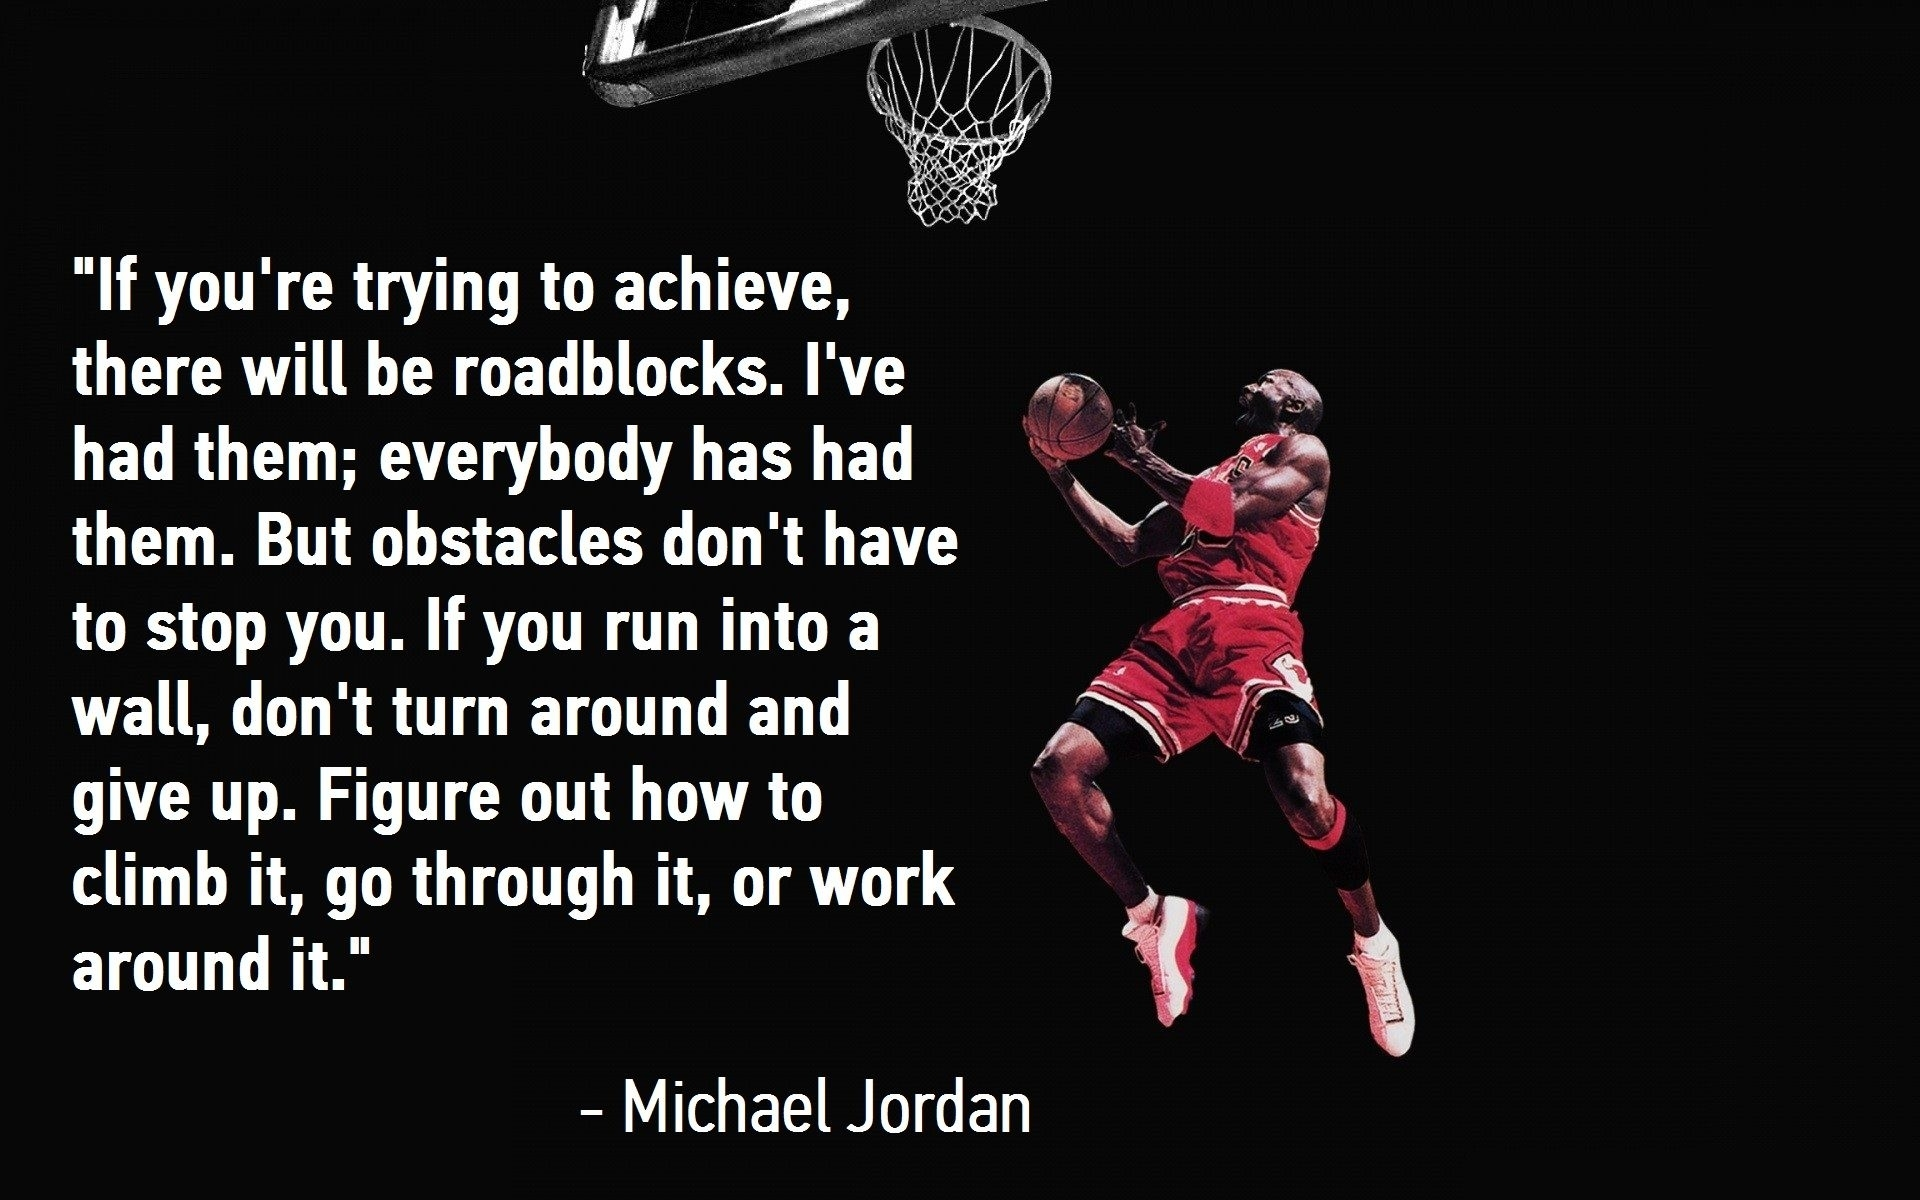 michael-jordan-quote-wallpaper-hd - wallpaper.wiki